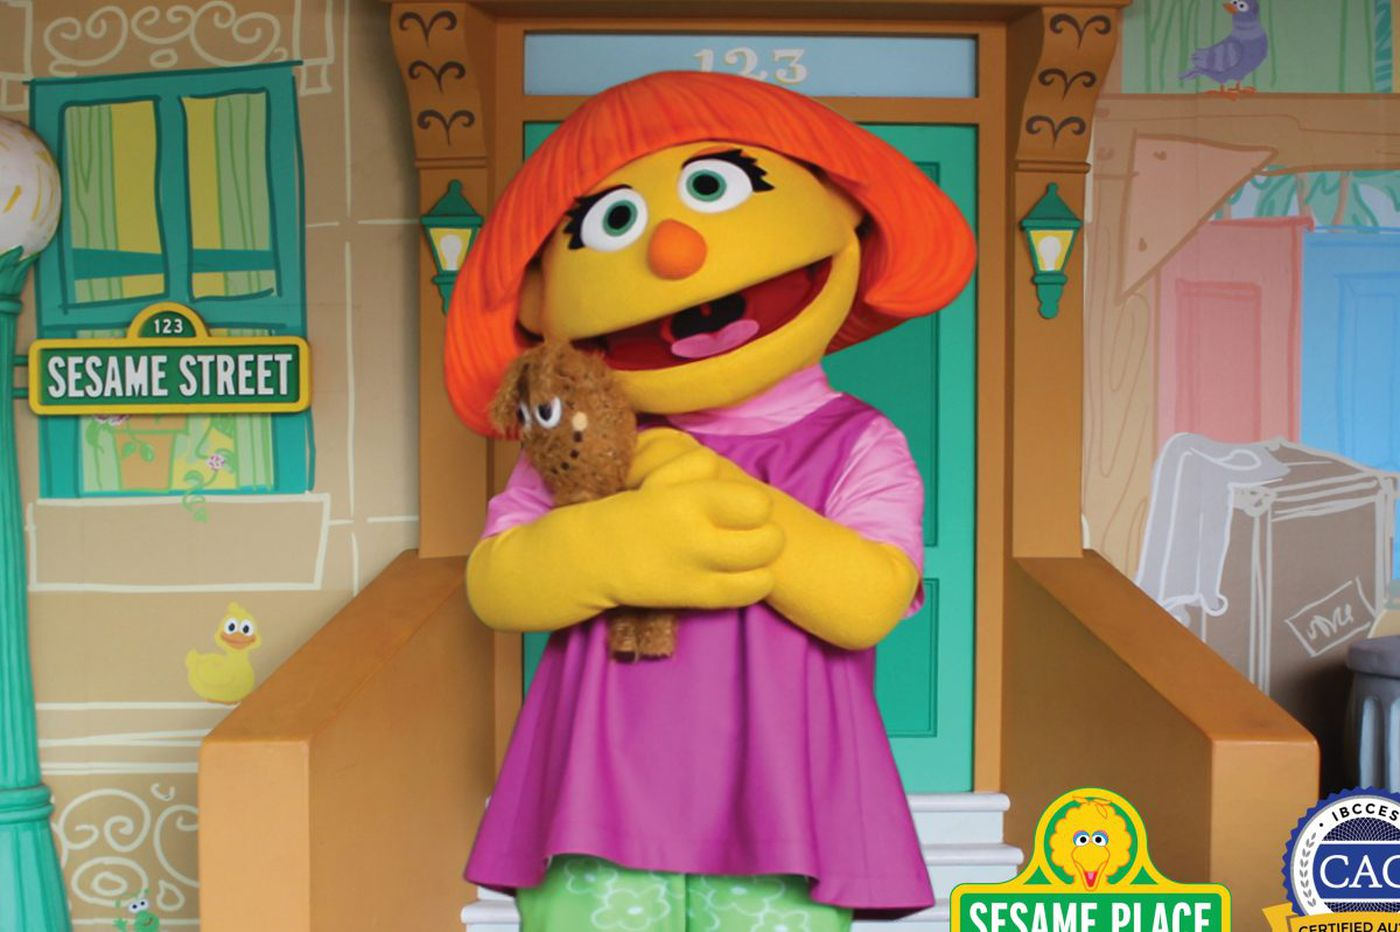 Autism-certified Sesame Place leads accessibility push among amusement parks, other sites